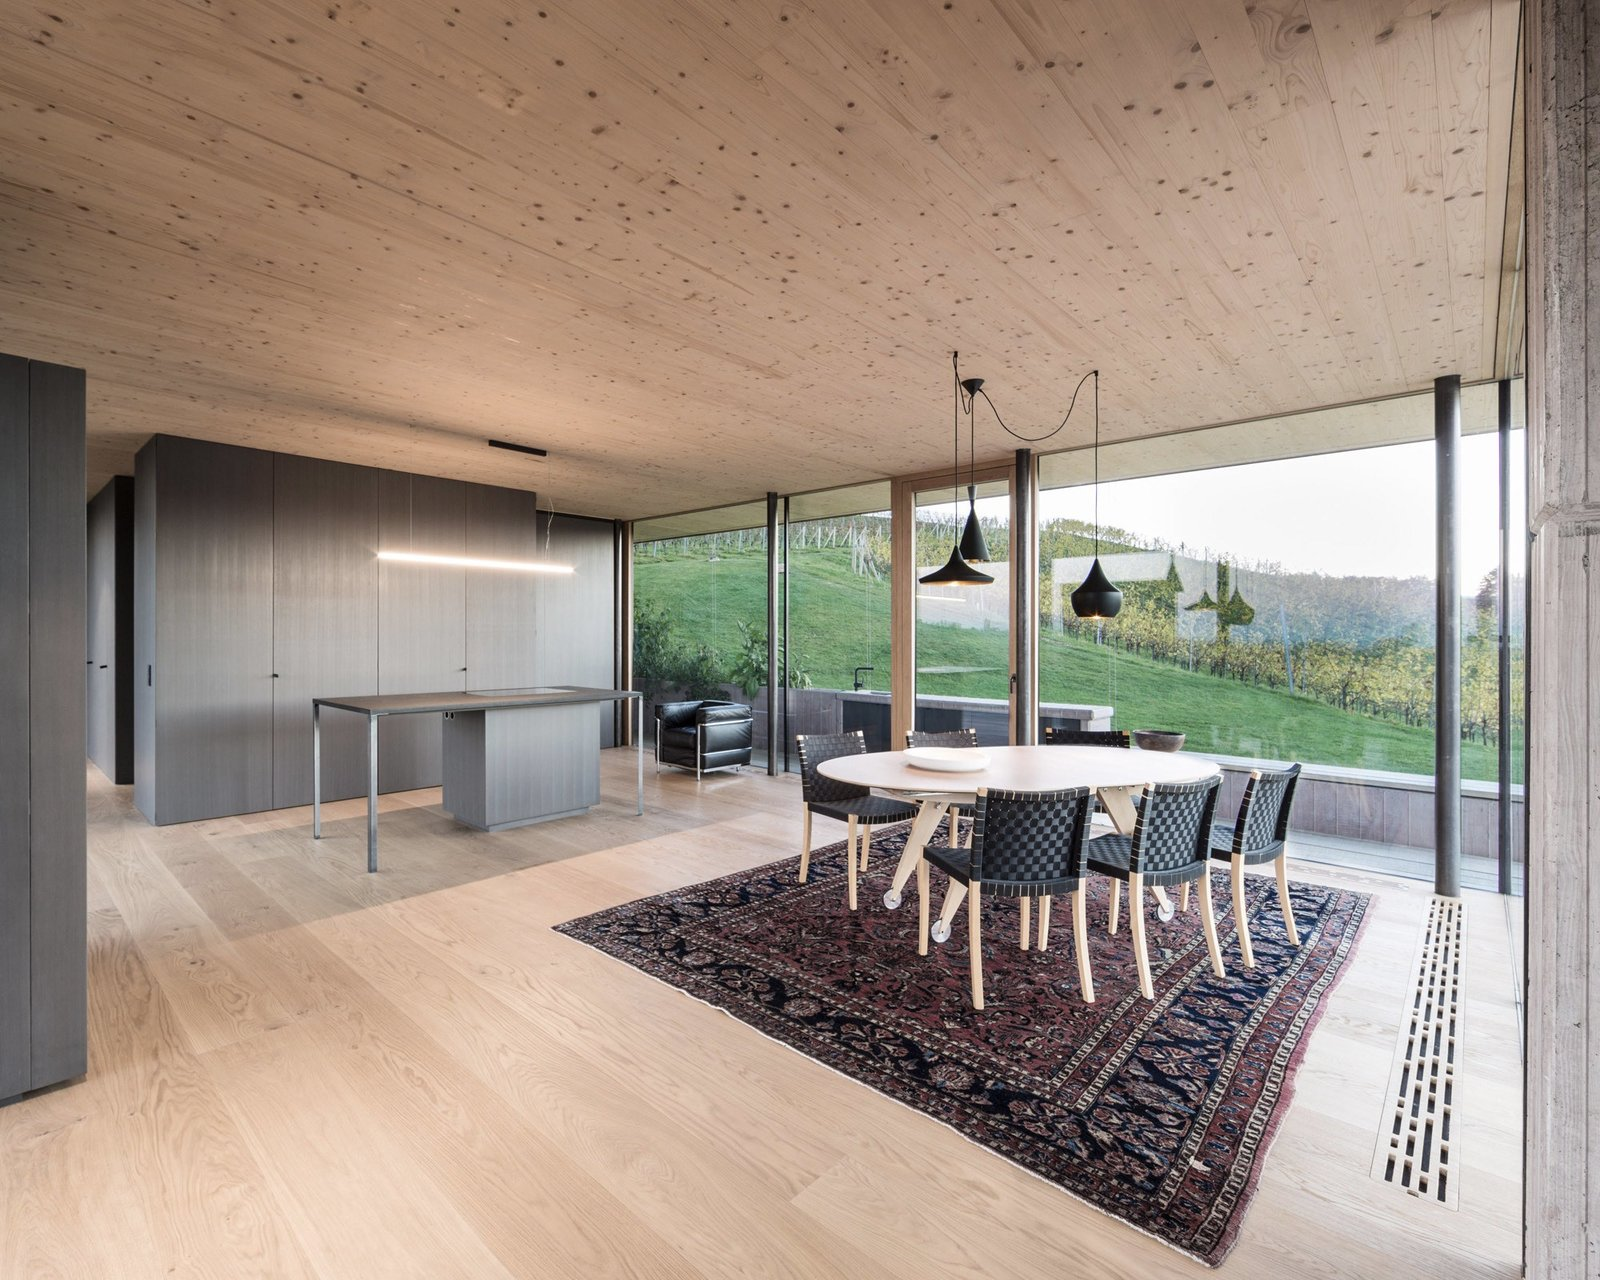 Photo 7 of 15 in A Former Wine Press House Becomes a Modern Vineyard Home